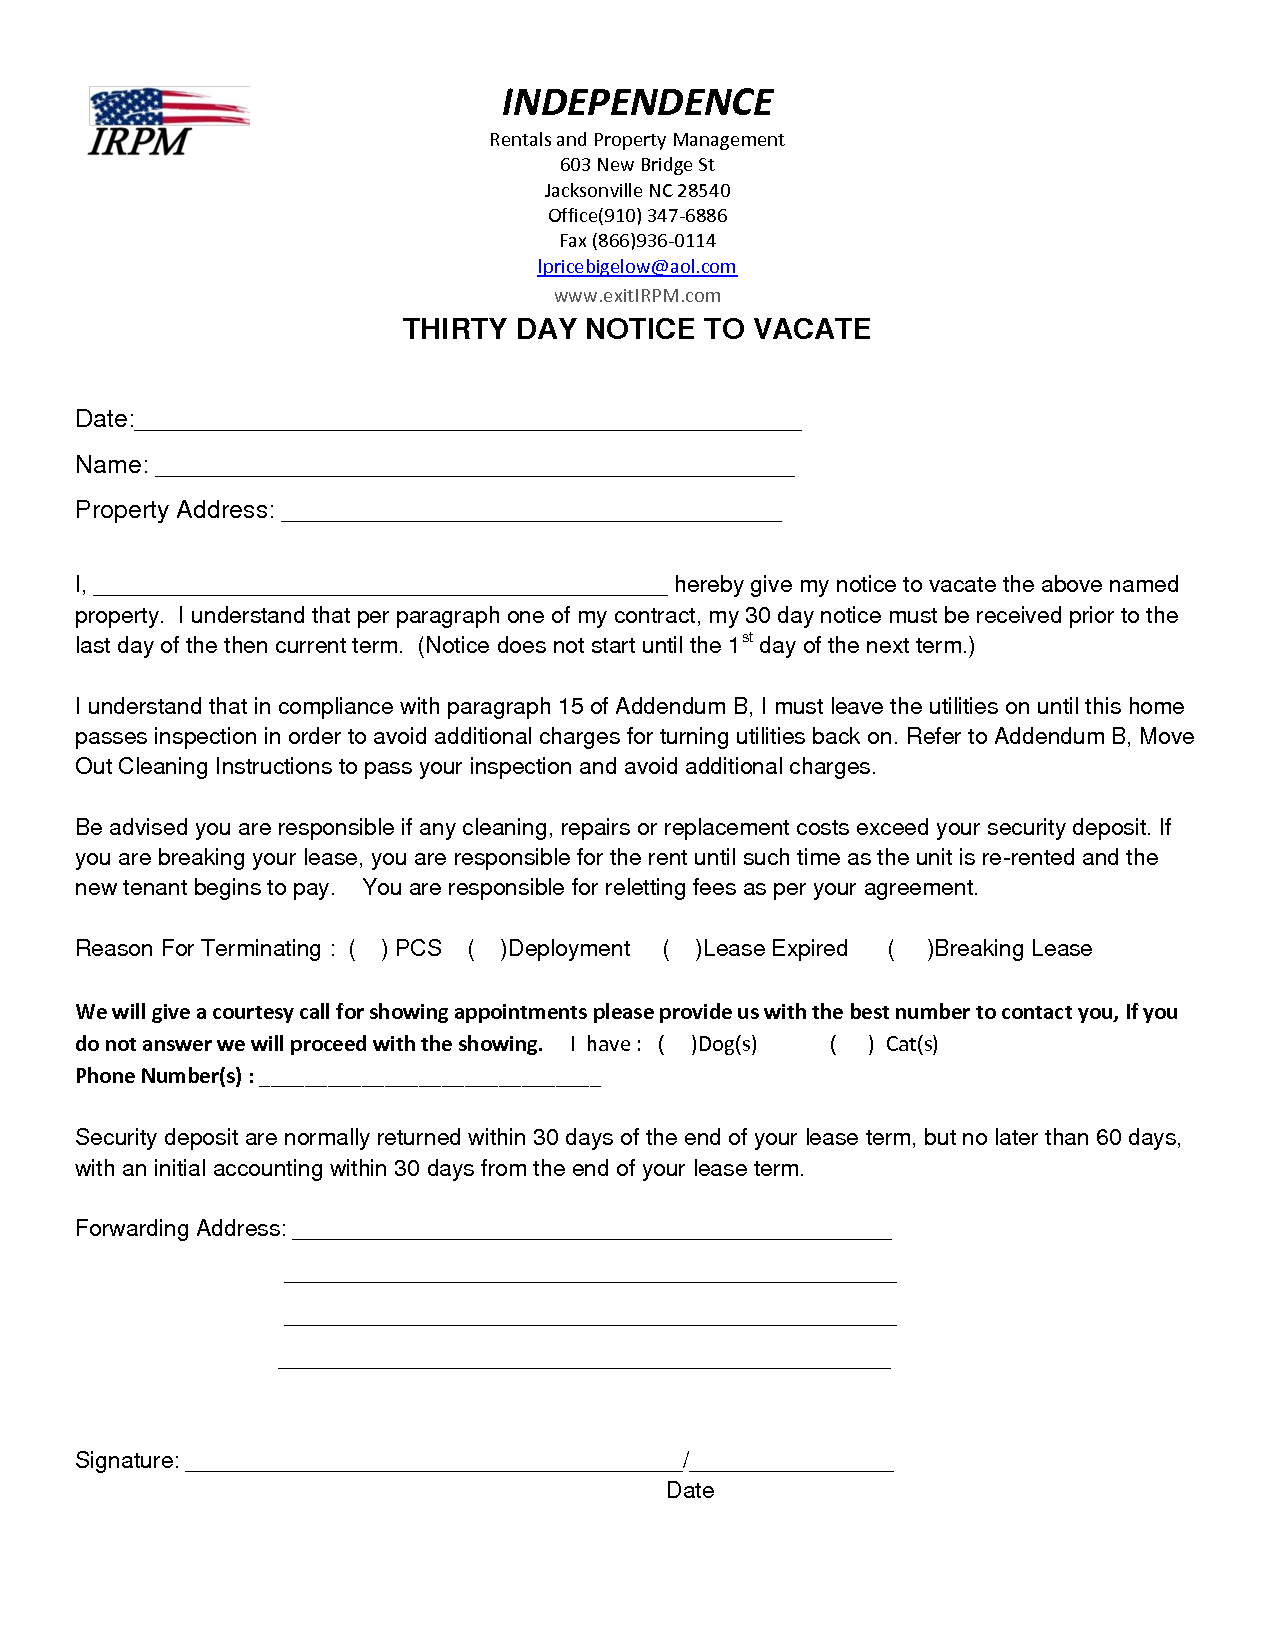 Intent to Vacate Letter Template - Letter Ent to Move From Apartment Out Notice Vacate Example